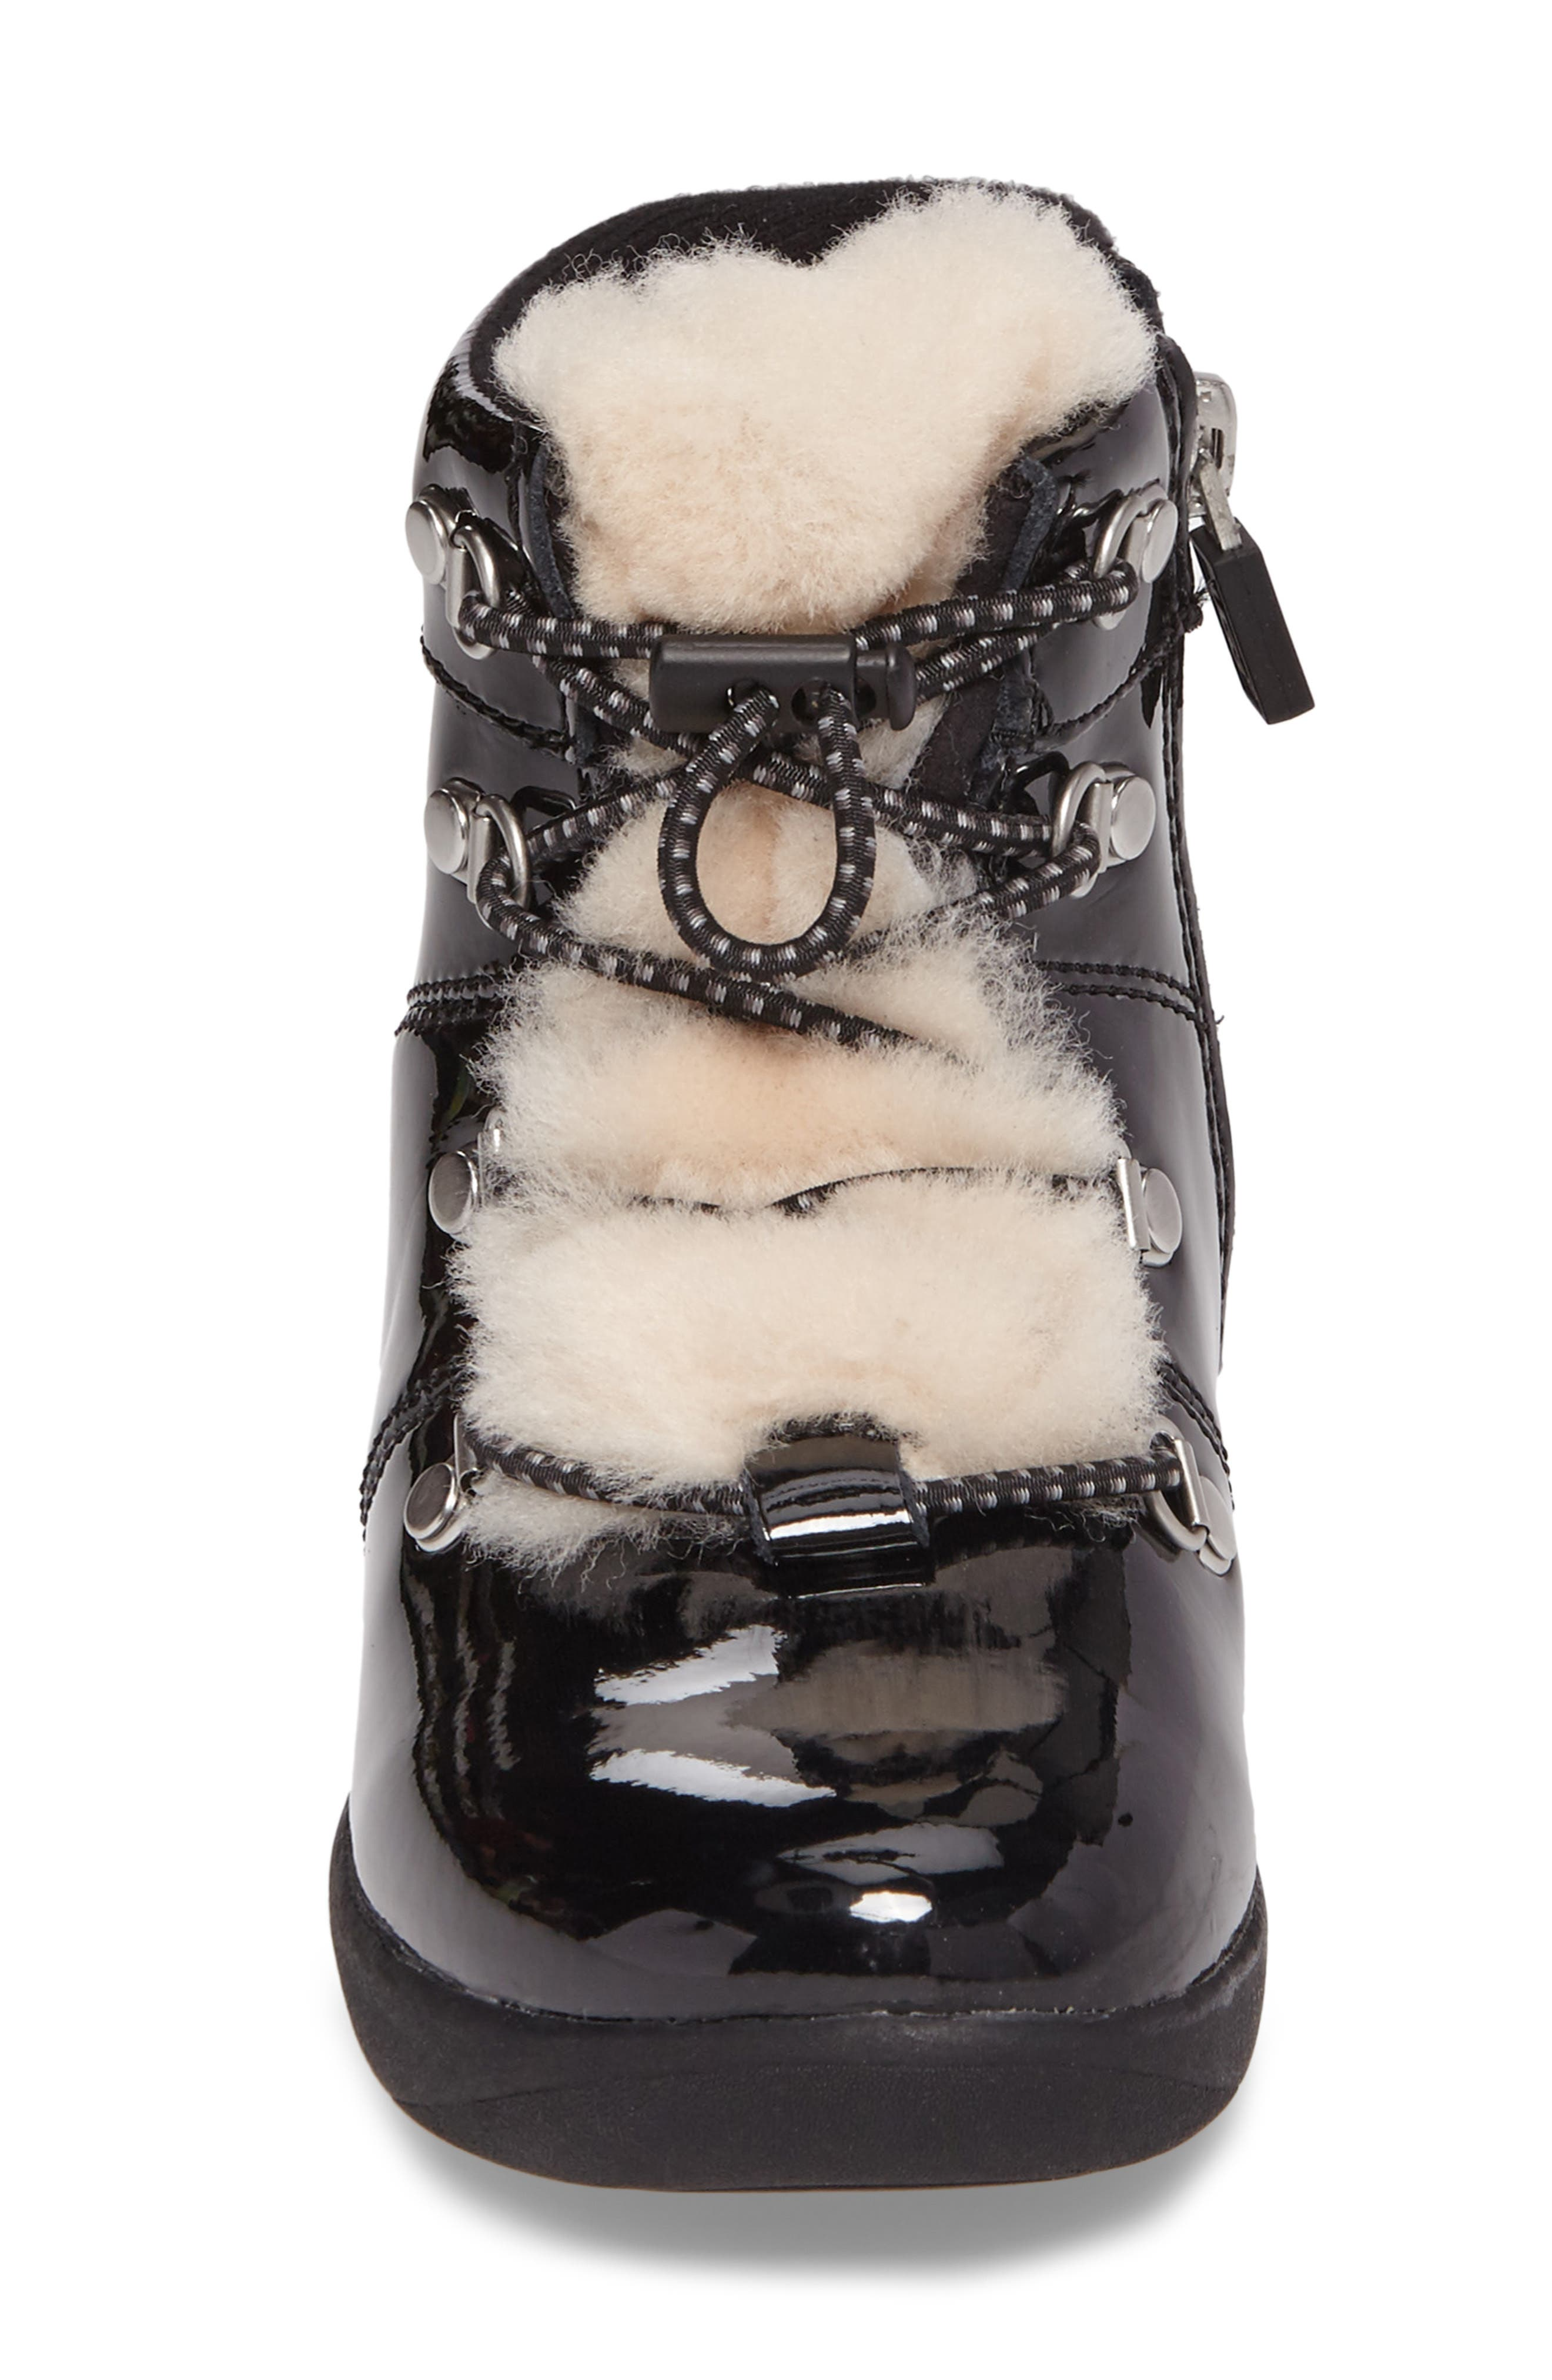 T Ager Genuine Shearling Polished Bootie,                             Alternate thumbnail 4, color,                             BLACK/ BLACK